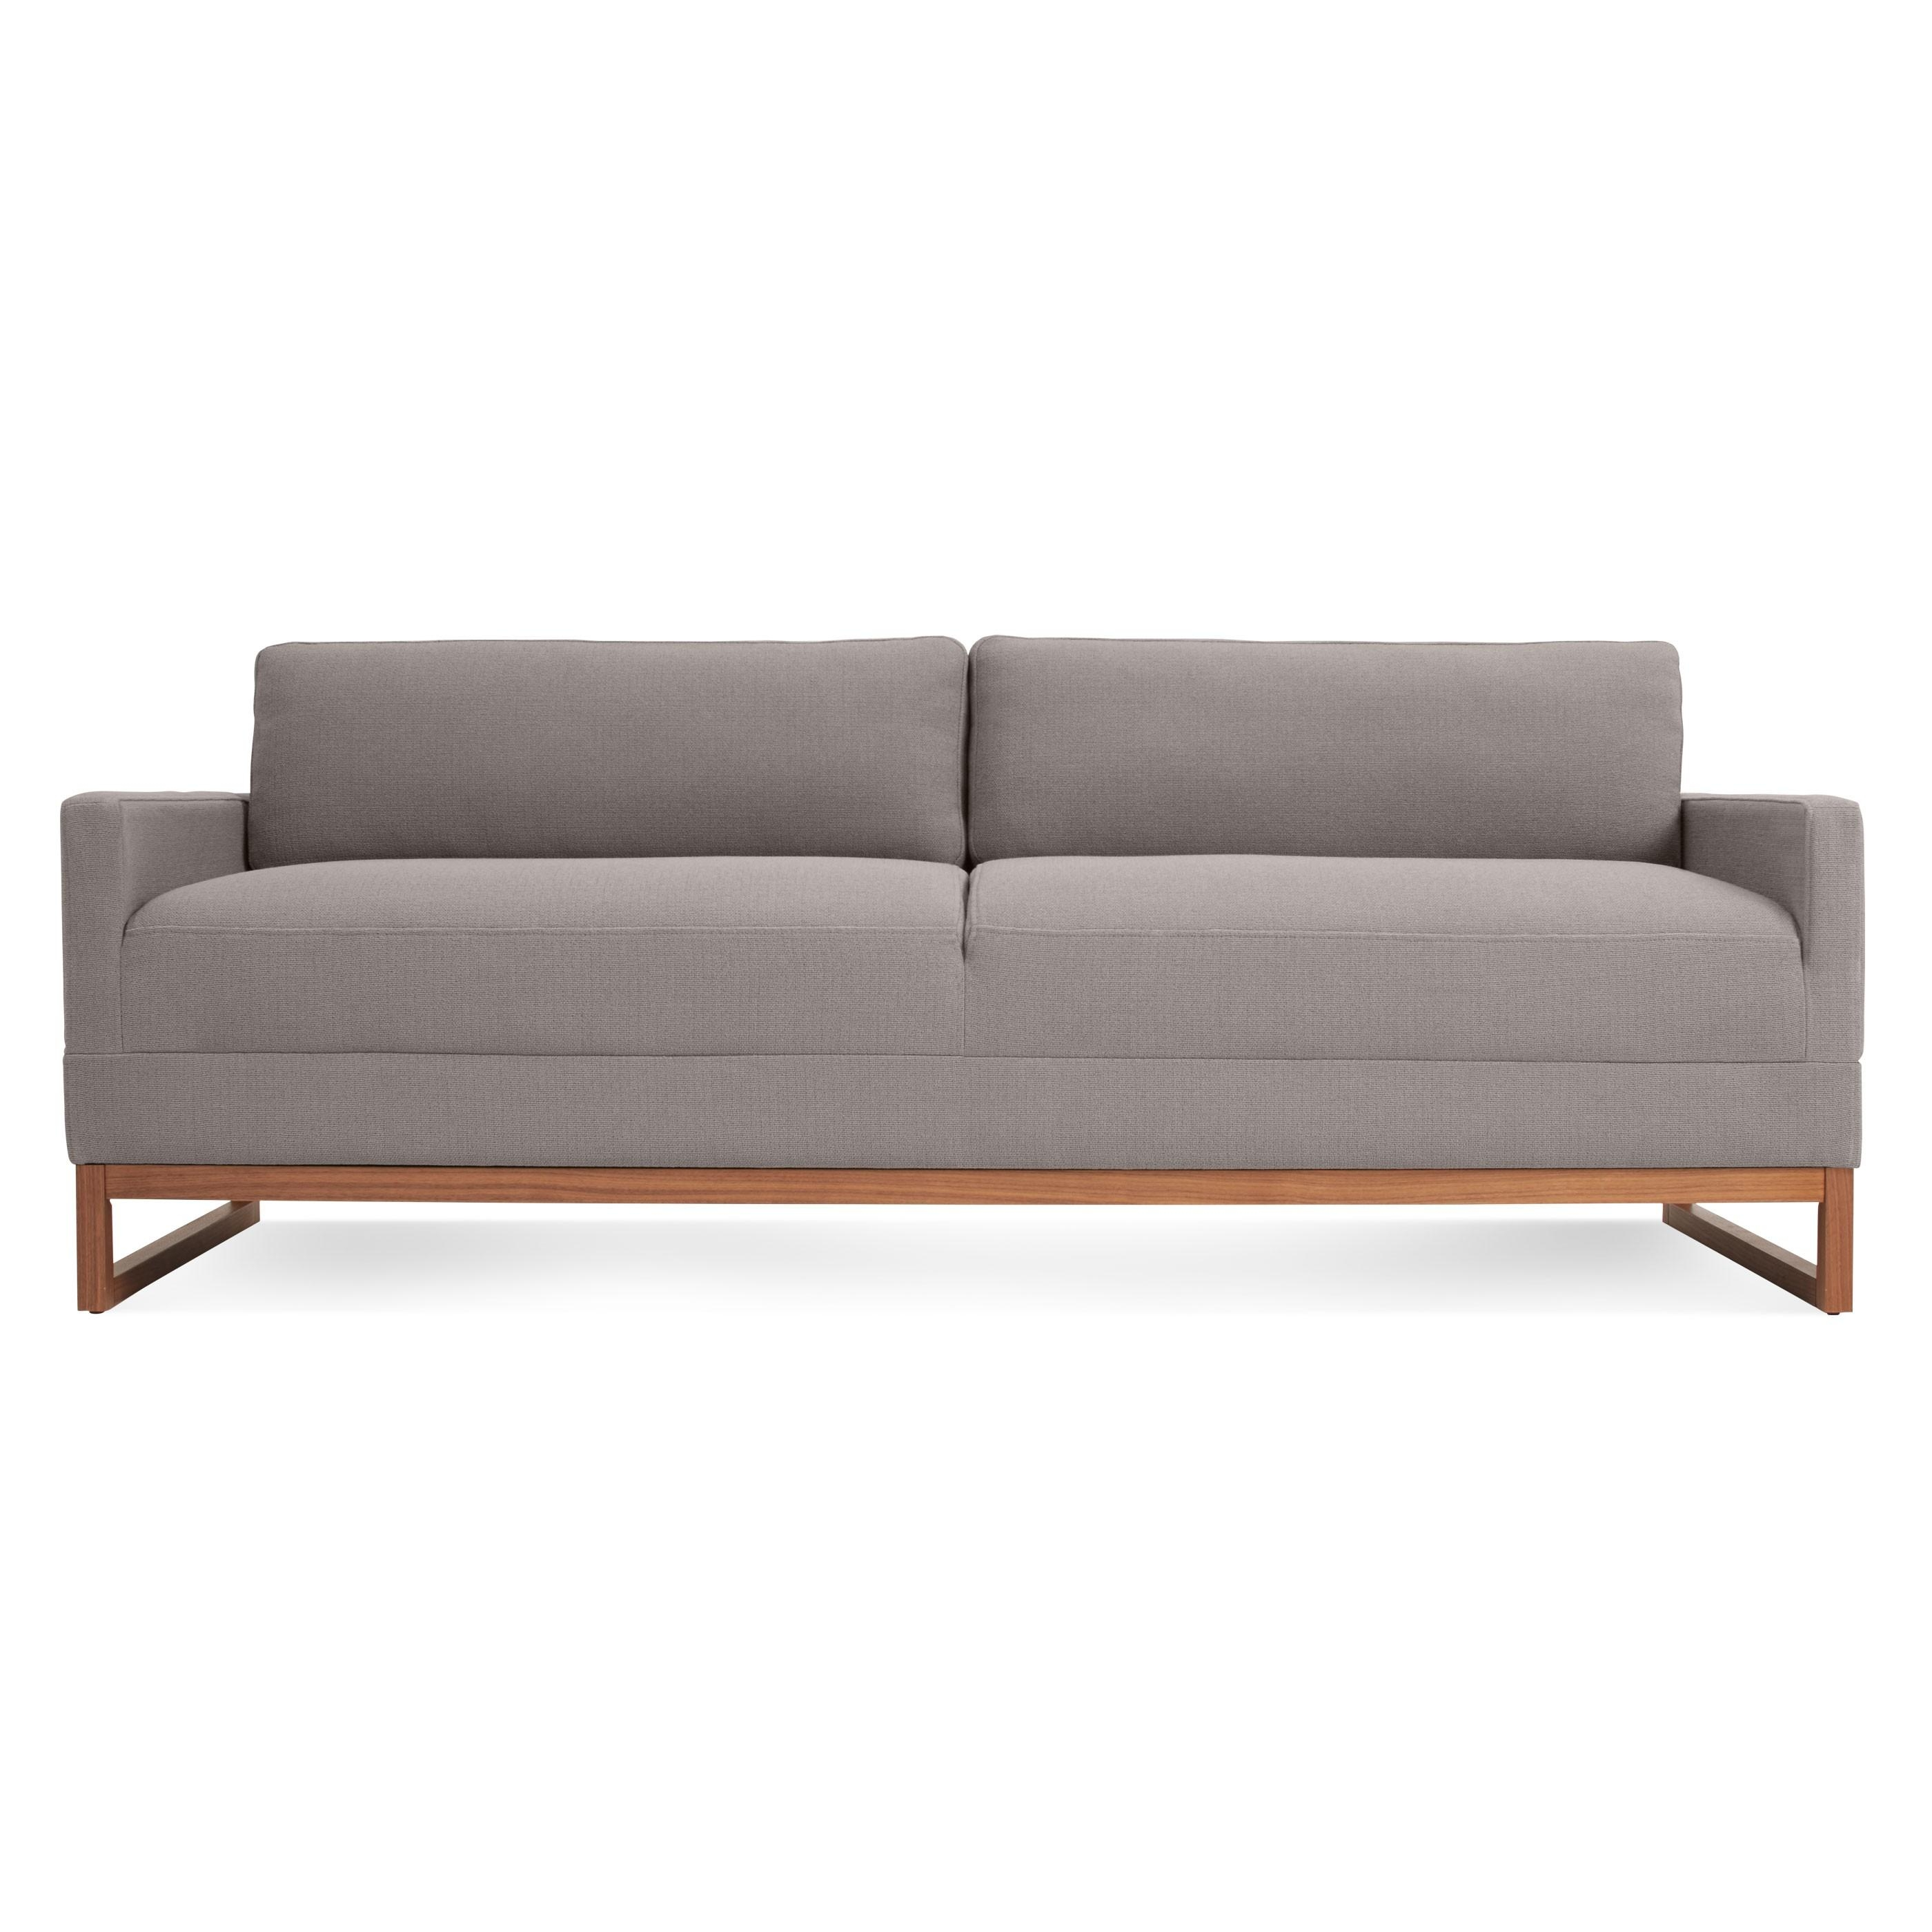 Sleeper Sofa – Diplomat Convertible Sofa | Blu Dot Throughout Sleeper Sofas (Image 12 of 20)